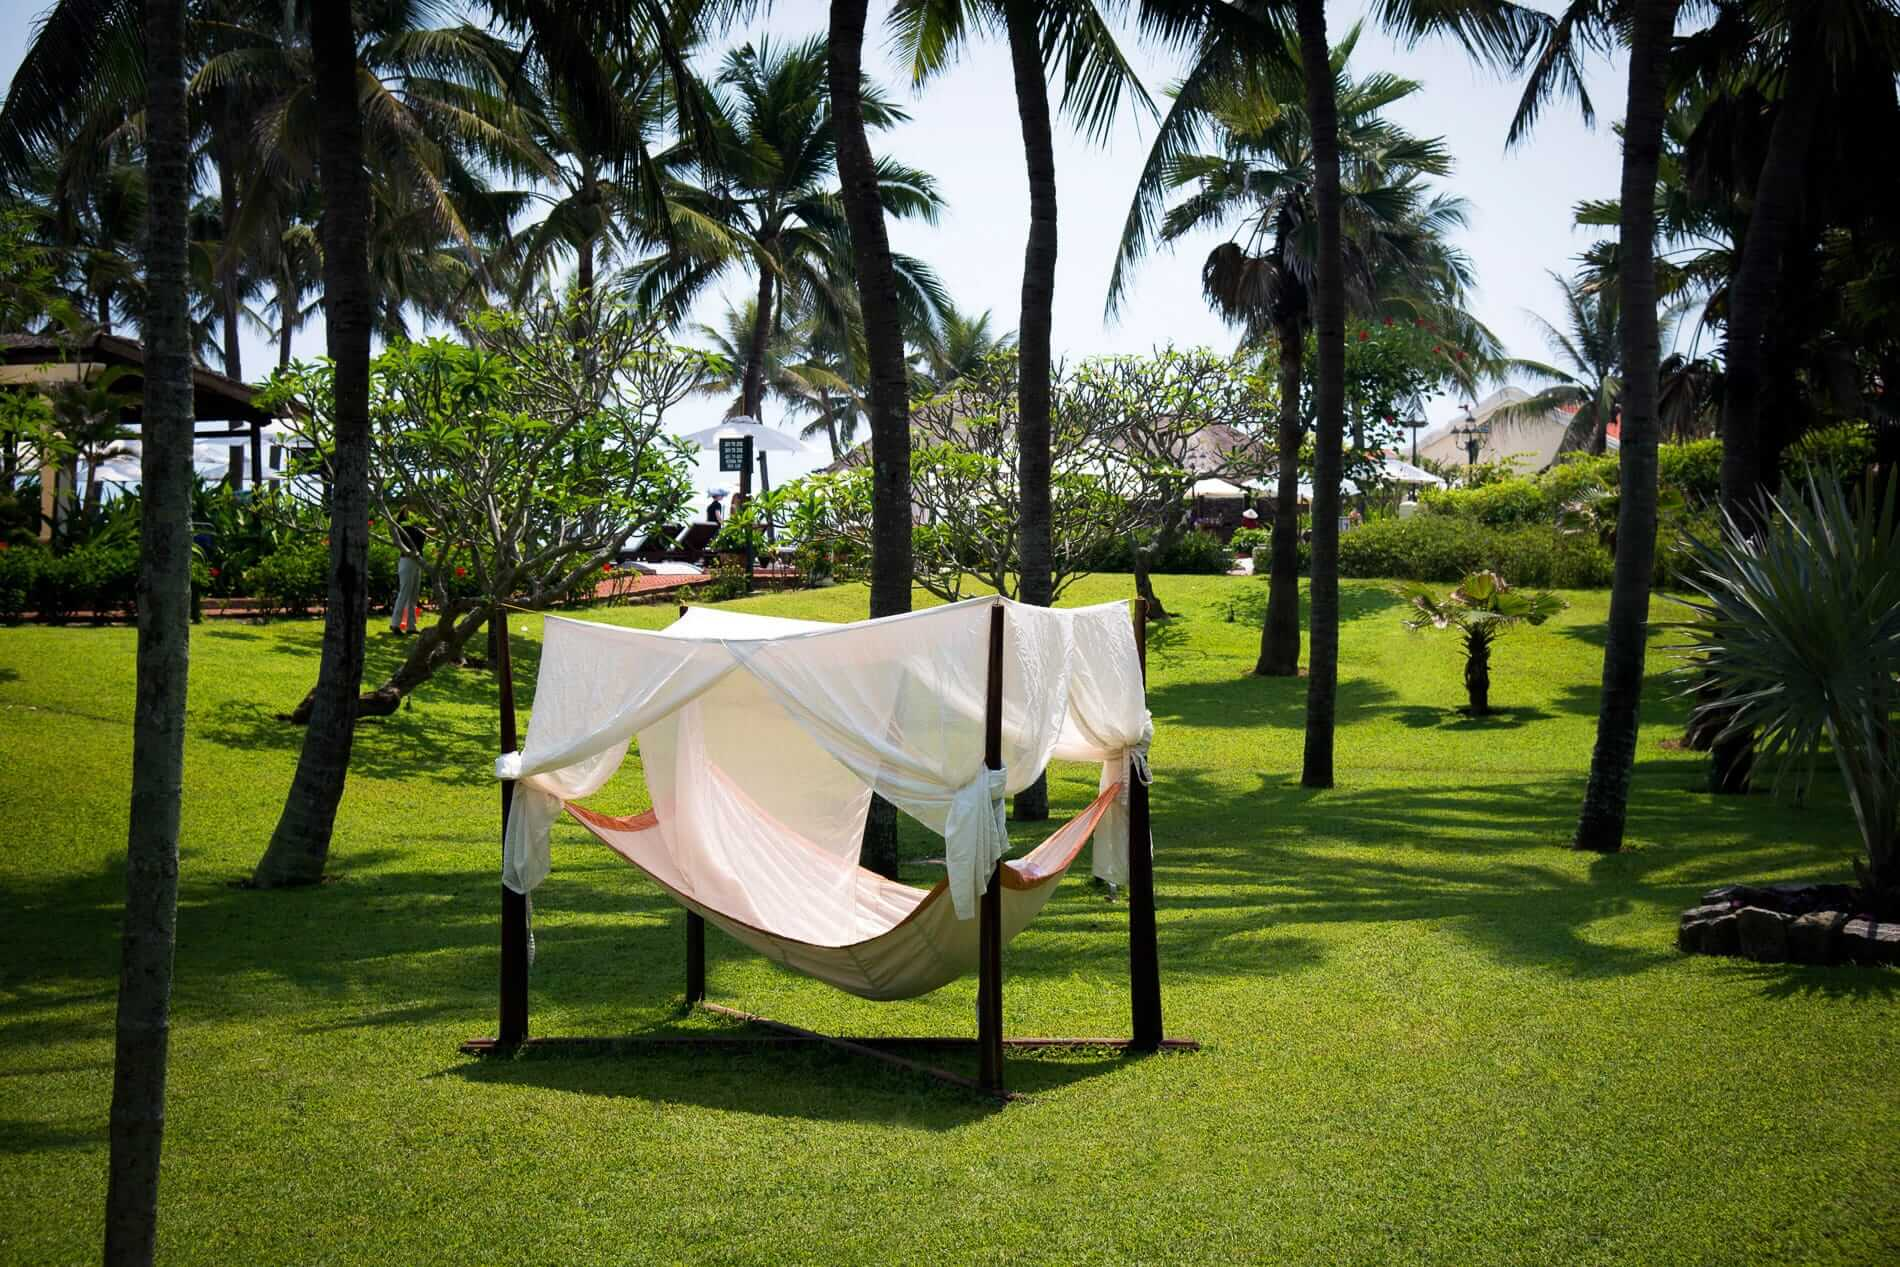 A giant hammock set at the tropical garden